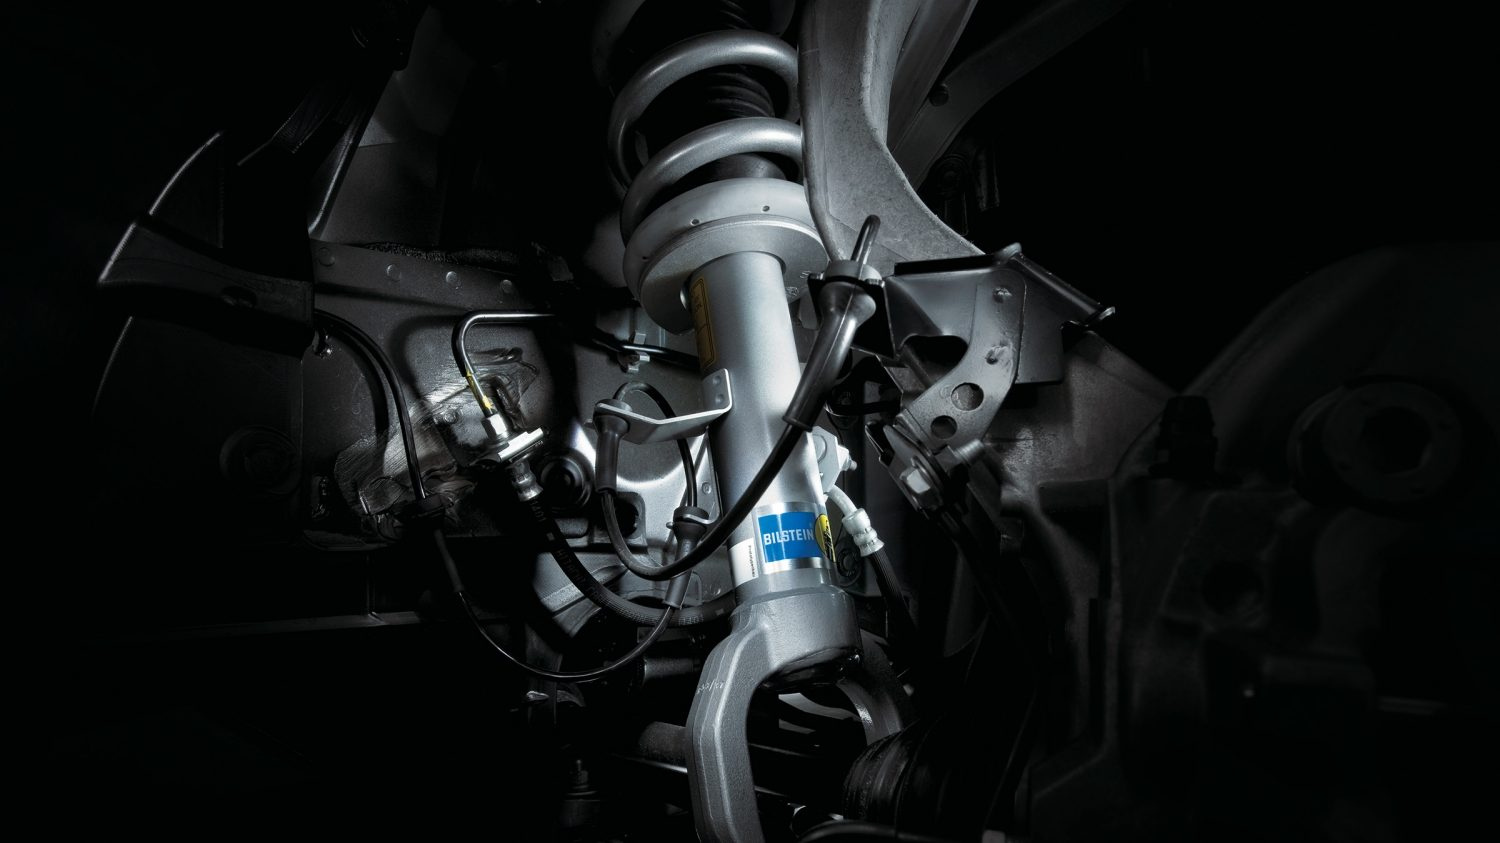 Nissan GT-R NISMO - suspension